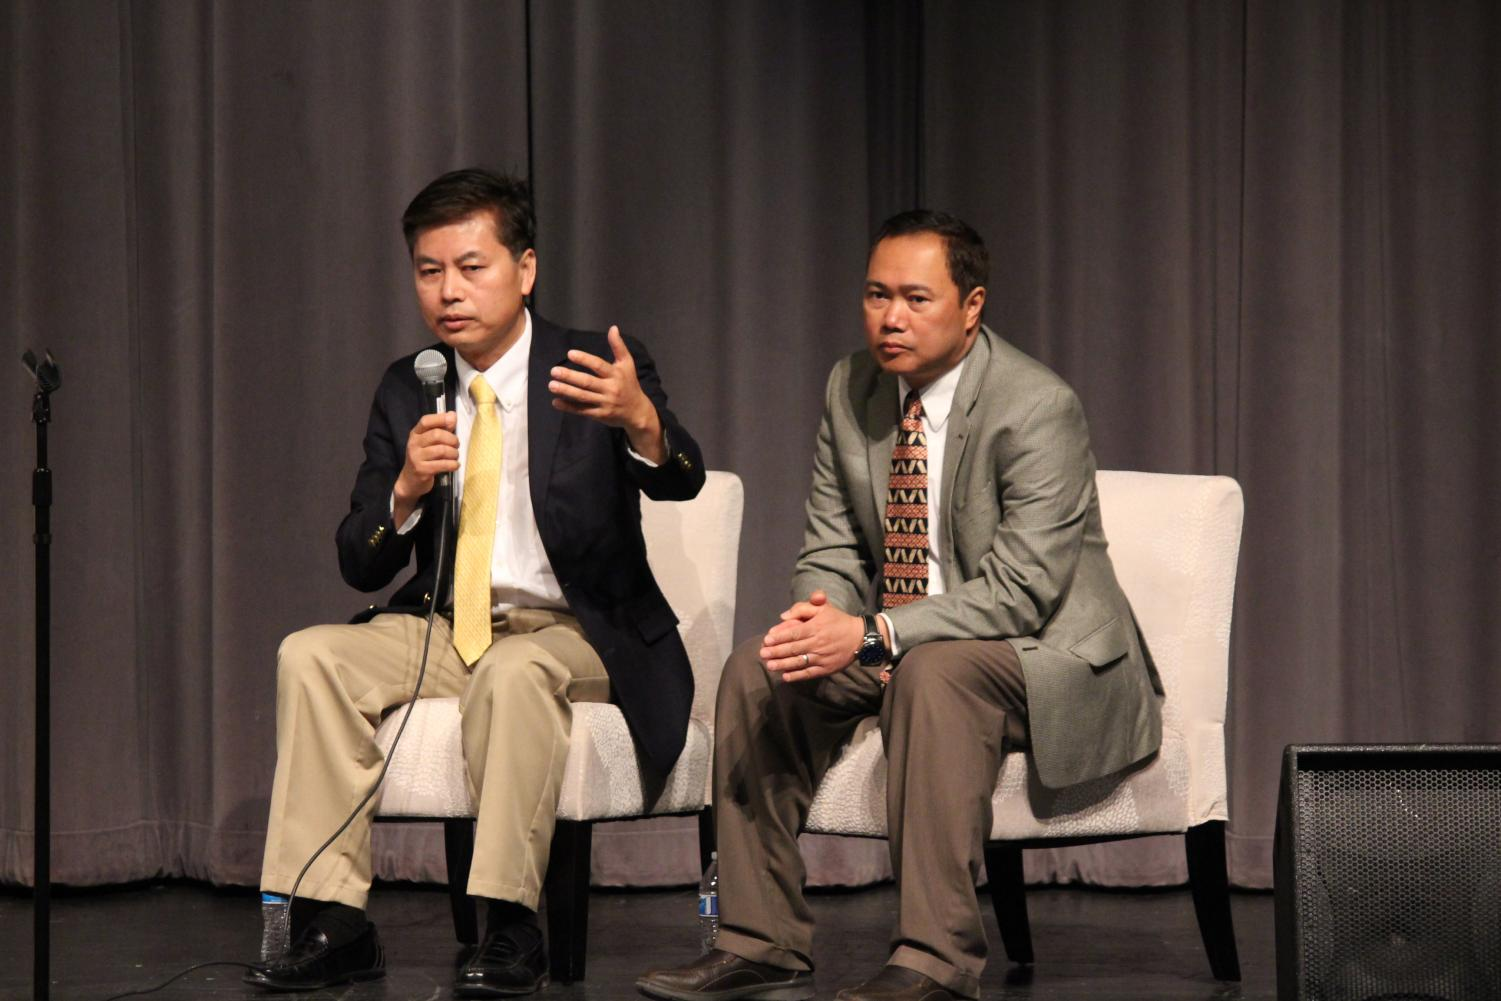 Tung Yap and Titony Dith speak to Dominion students about their experiences in Cambodia.